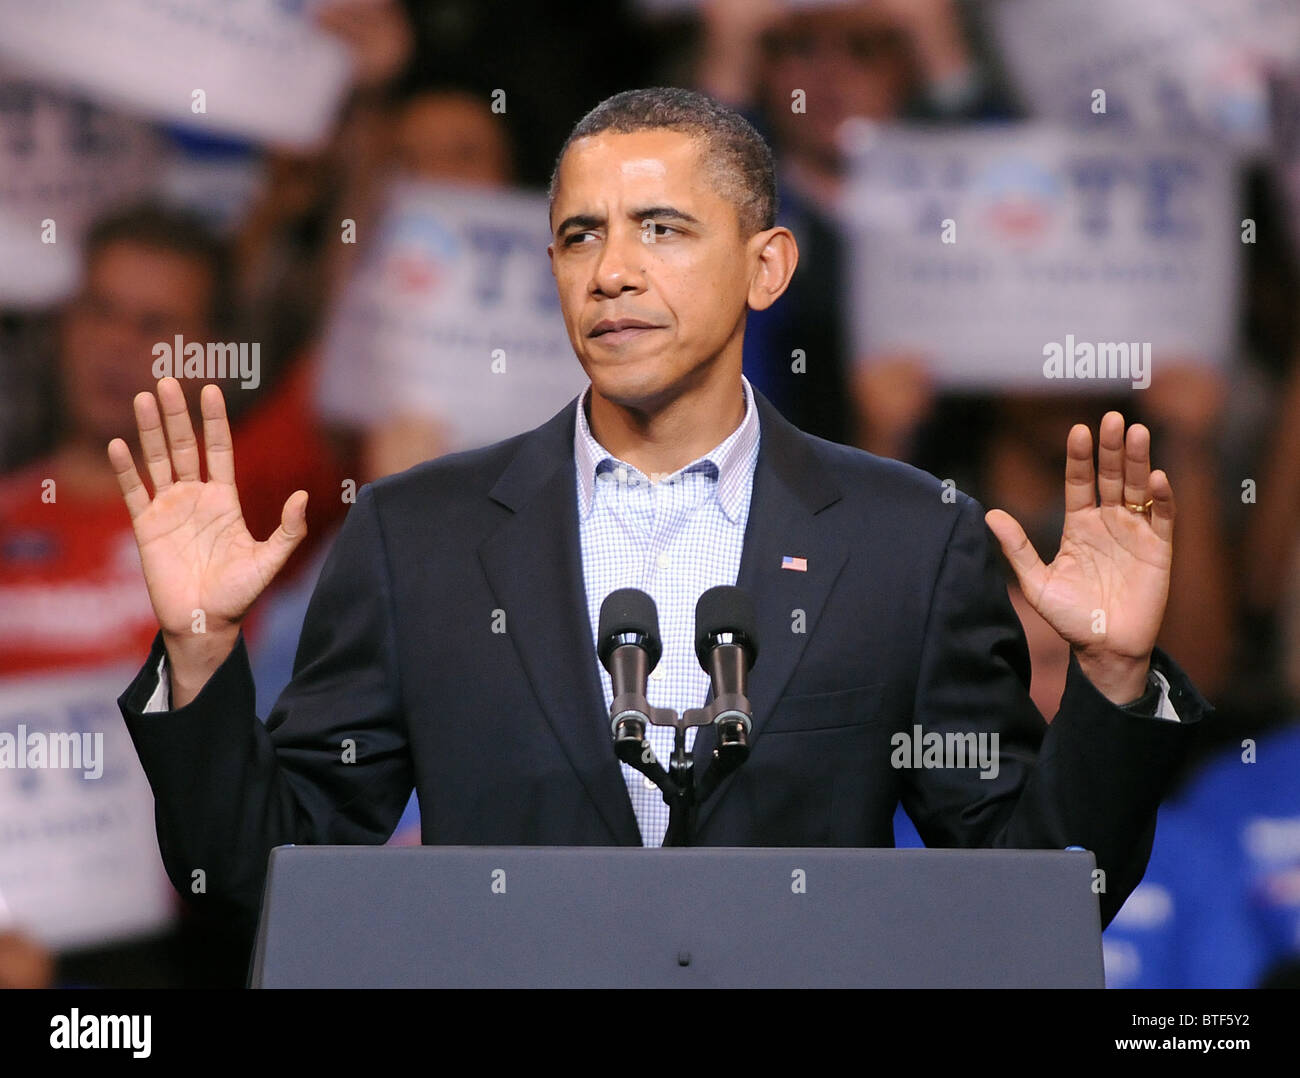 10/30/10 Bridgeport--President Barack Obama speaks at a rally supporting Connecticut Democratic Candidates in Bridgeport - Stock Image